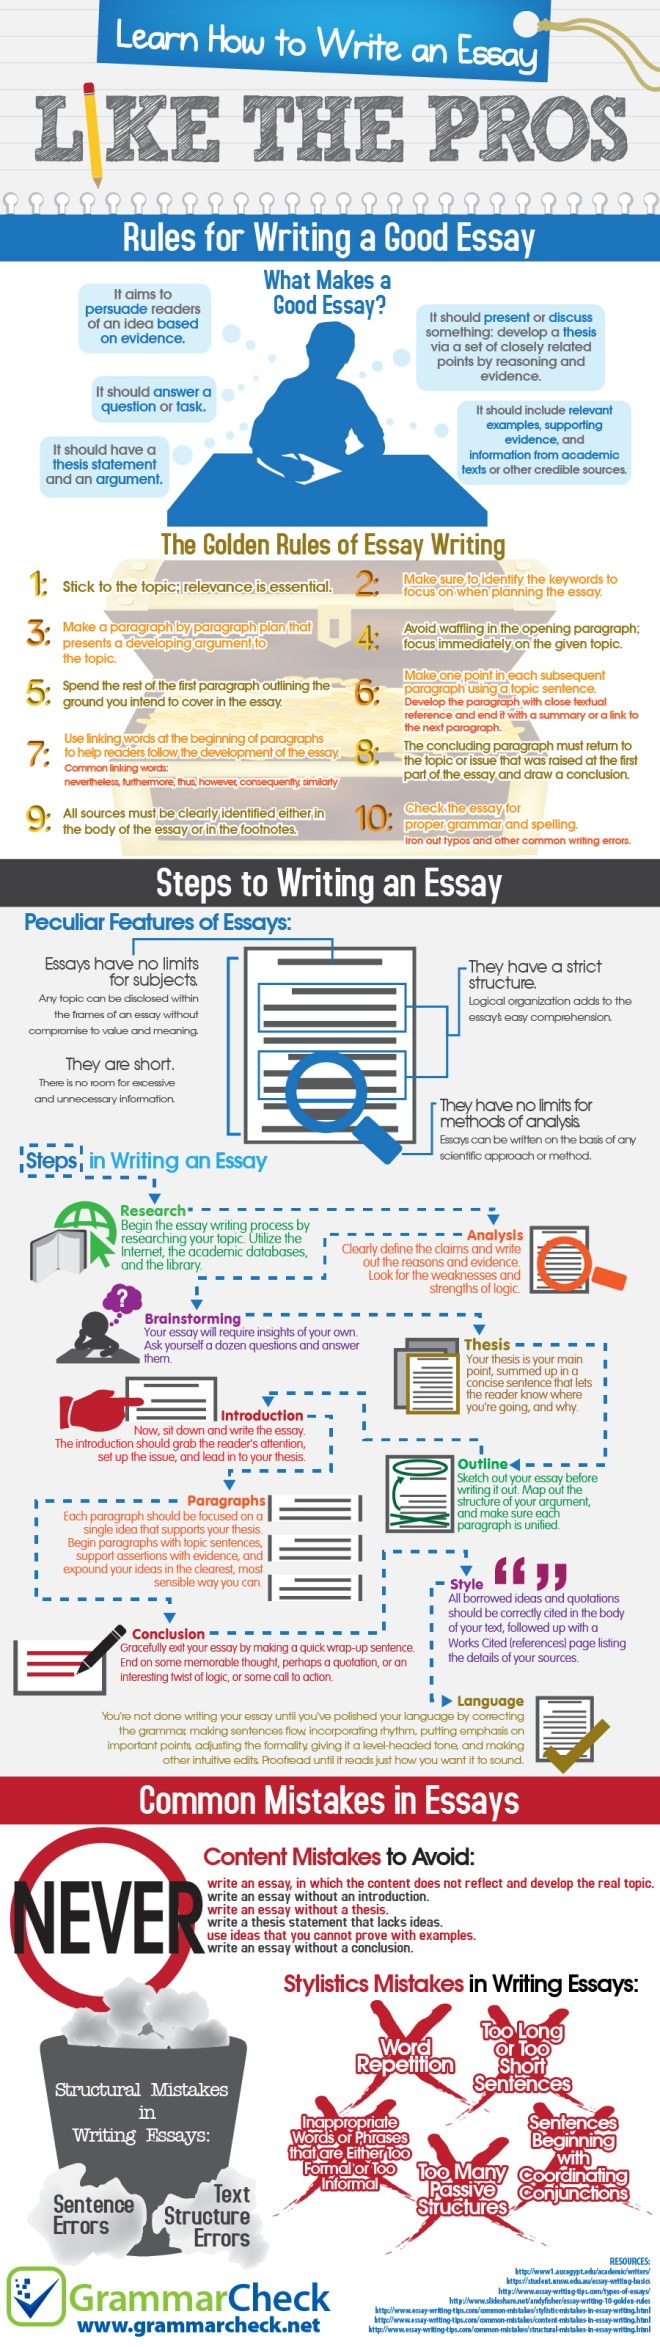 How to Write an Essay in UPSC CAPF Assistant Commandant Exam, SBI PO, UPSC Civil Services Exam